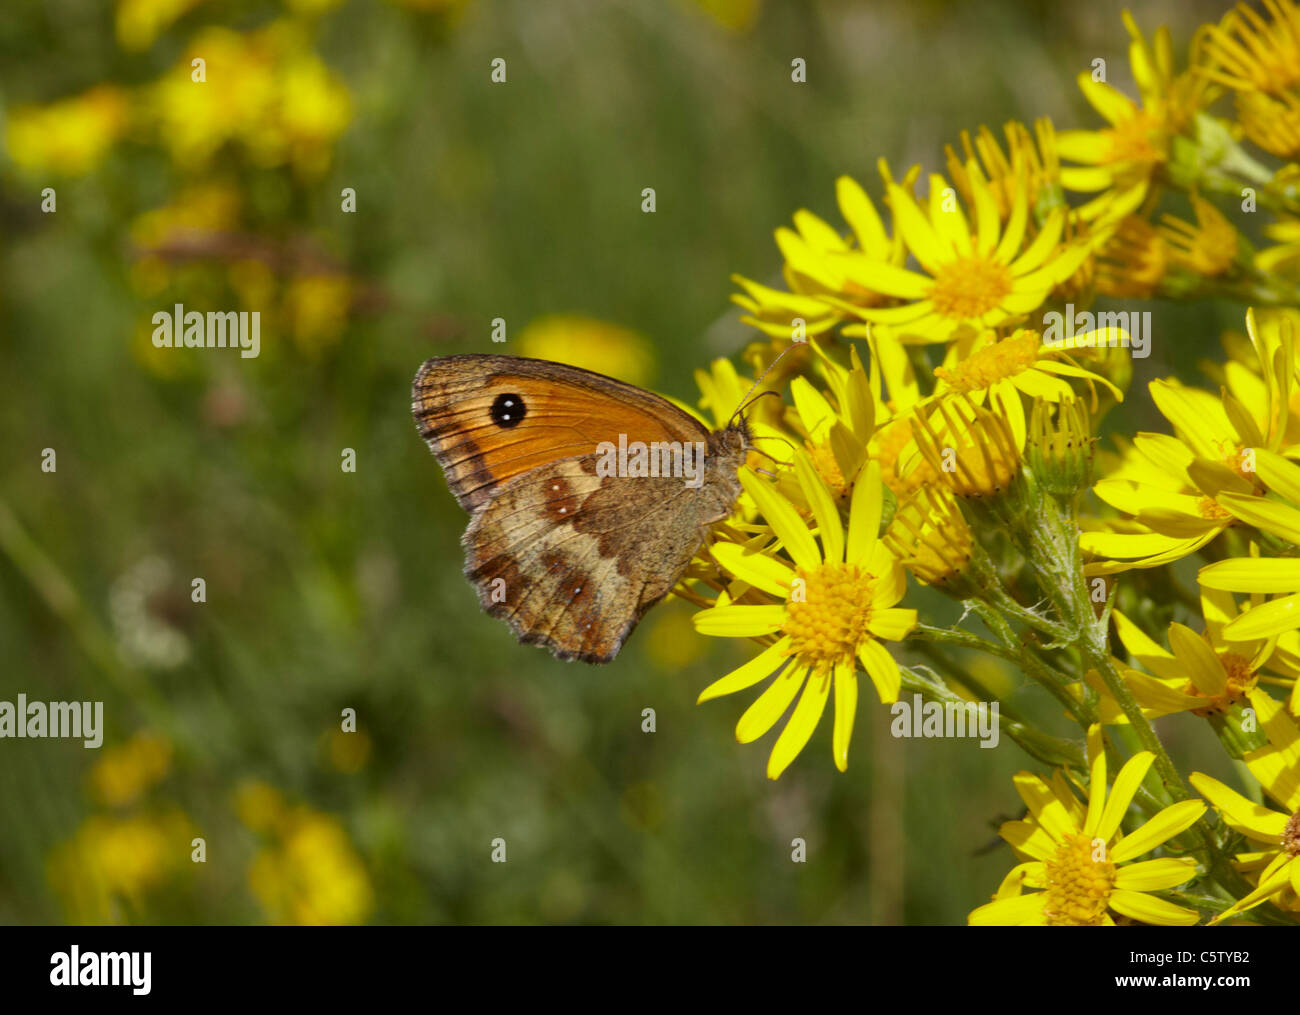 Gatekeeper butterfly on Ragwort. Hurst Meadows, West Molesey, Surrey, England. - Stock Image